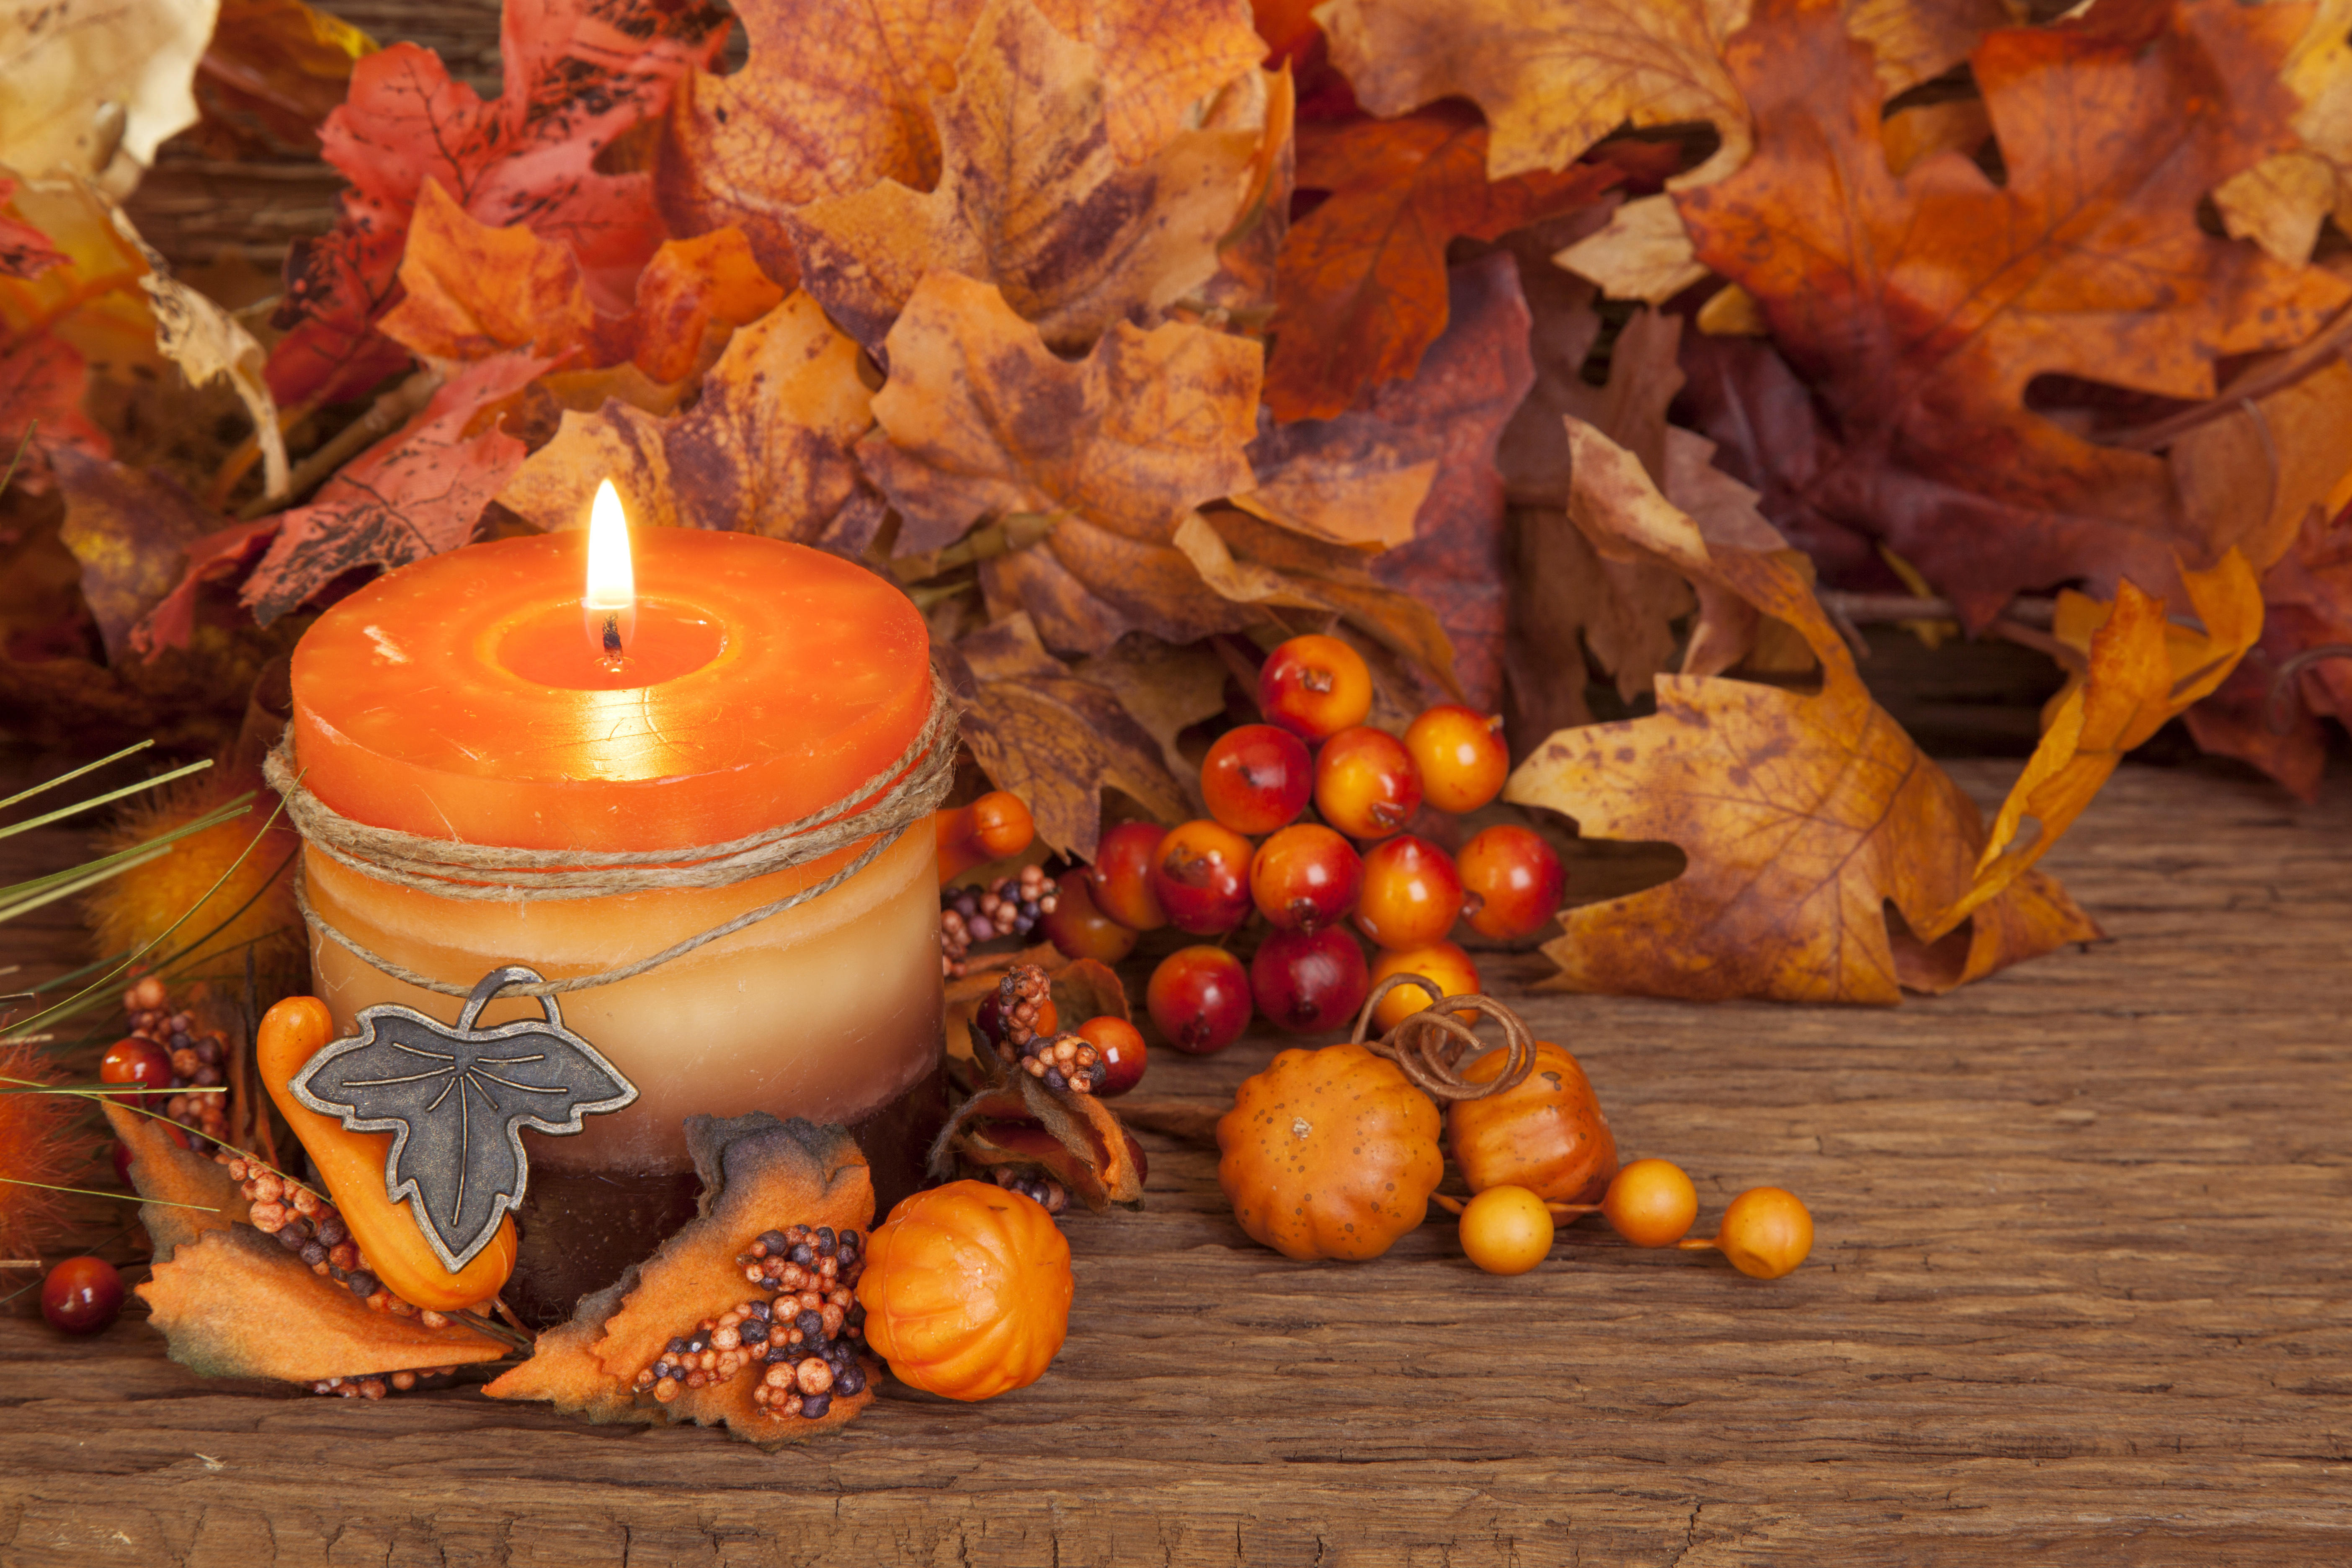 Pumpkin orange candle surrounded by various Autumn items